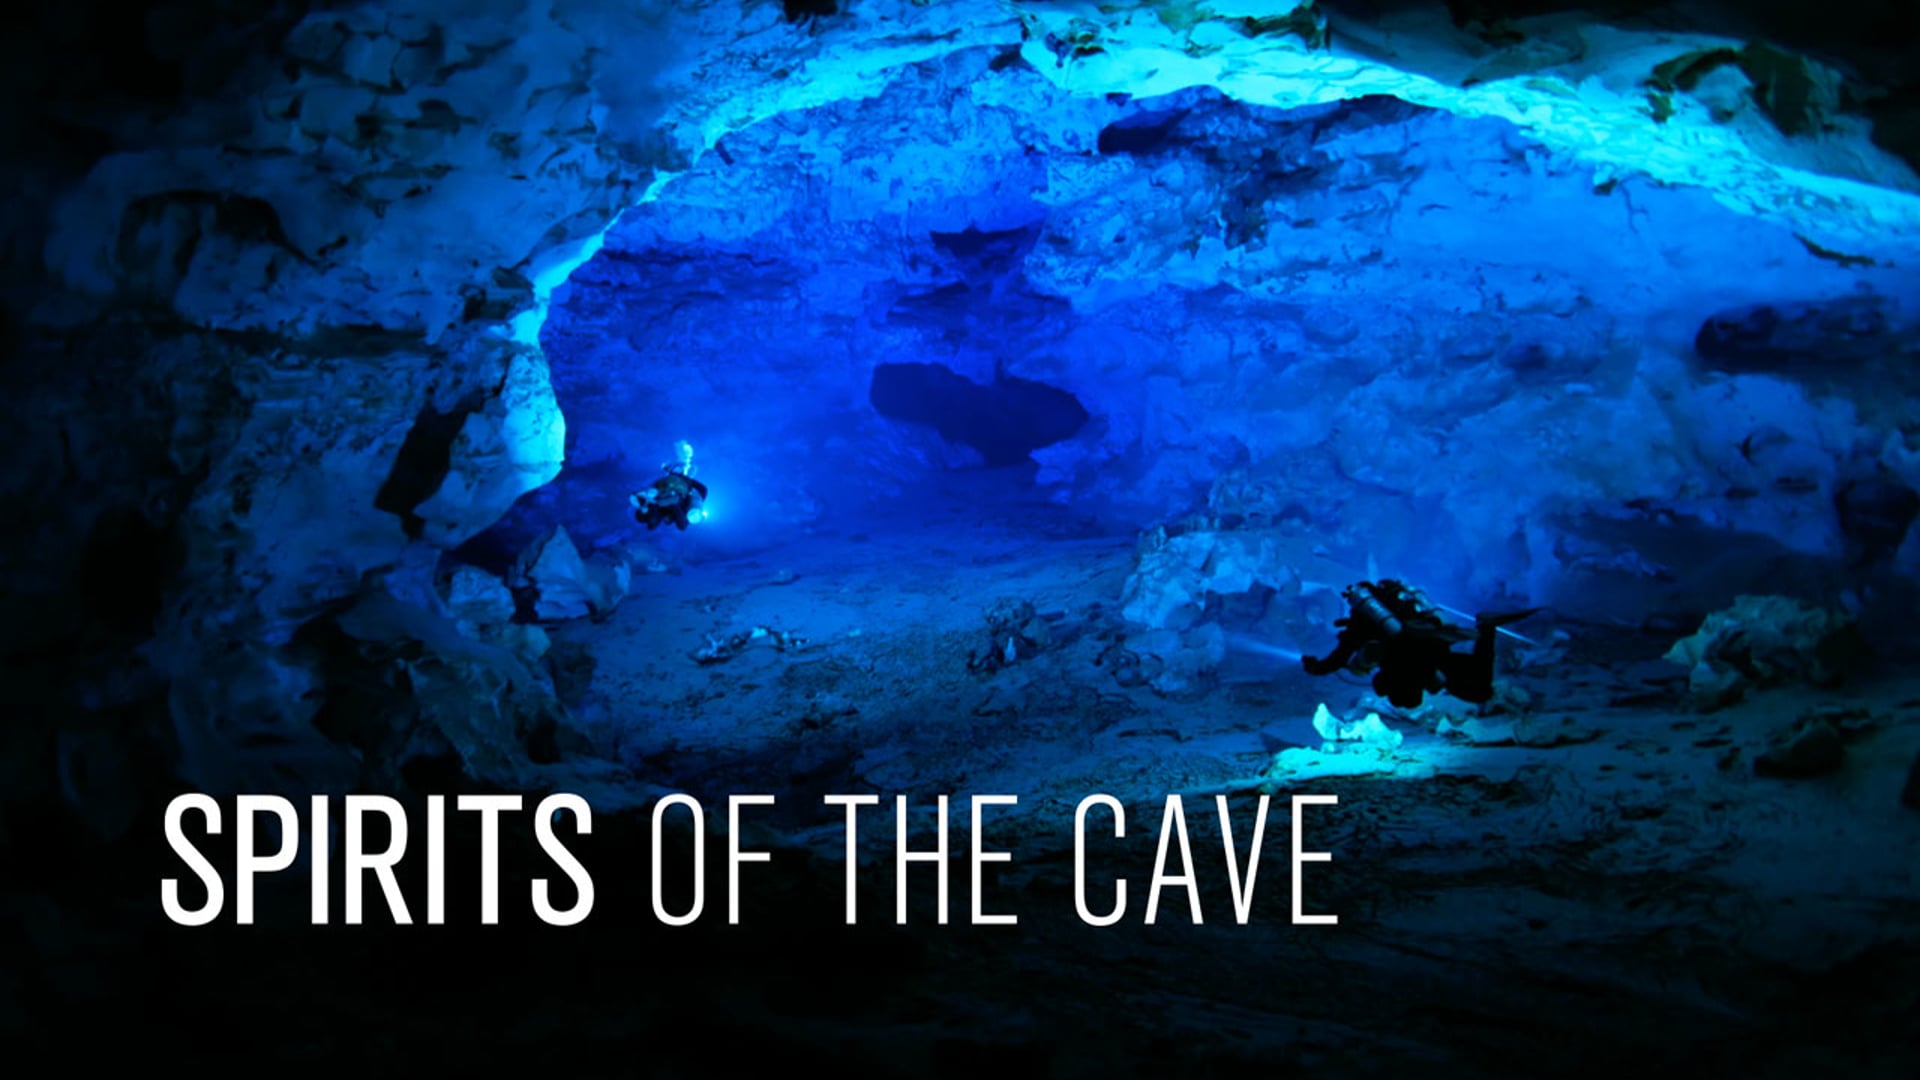 Spirits of the Cave